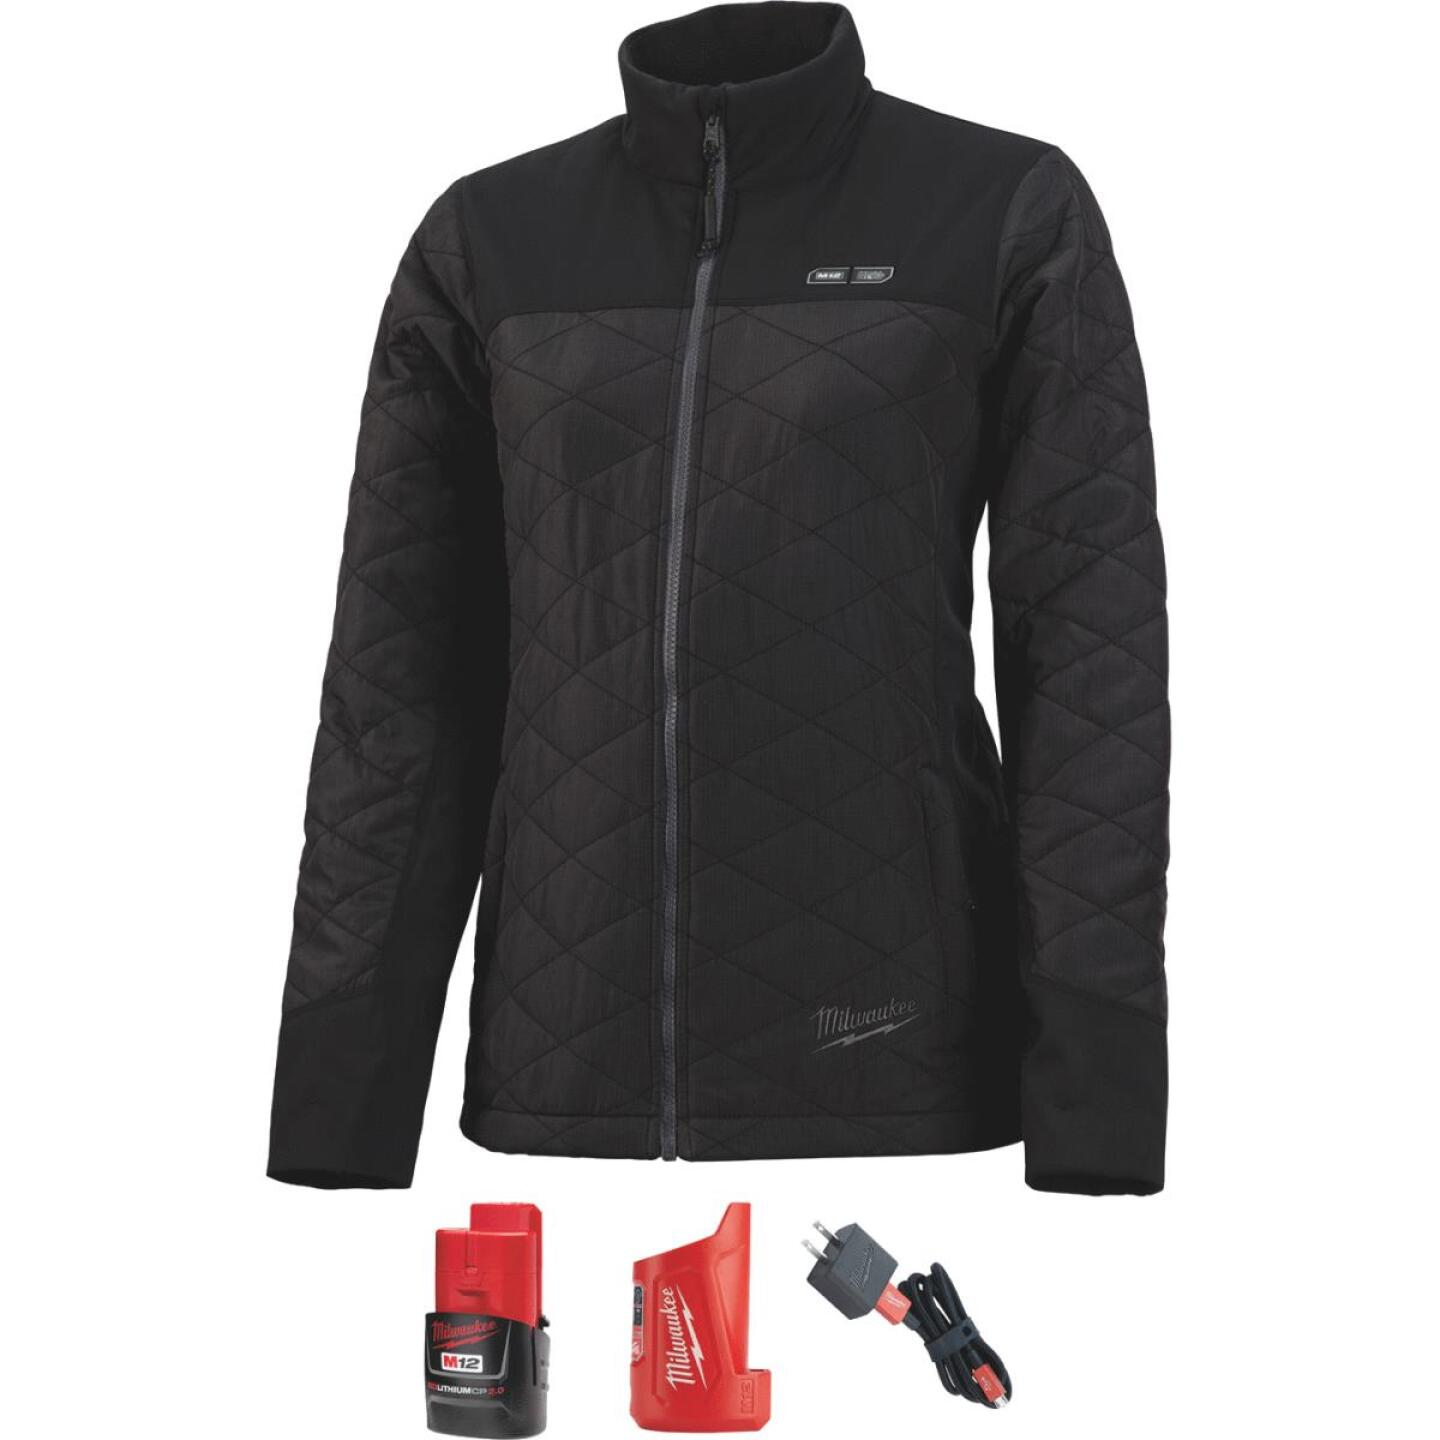 Milwaukee M12 Large Black Cordless Ladies Heated Jacket Kit Image 1